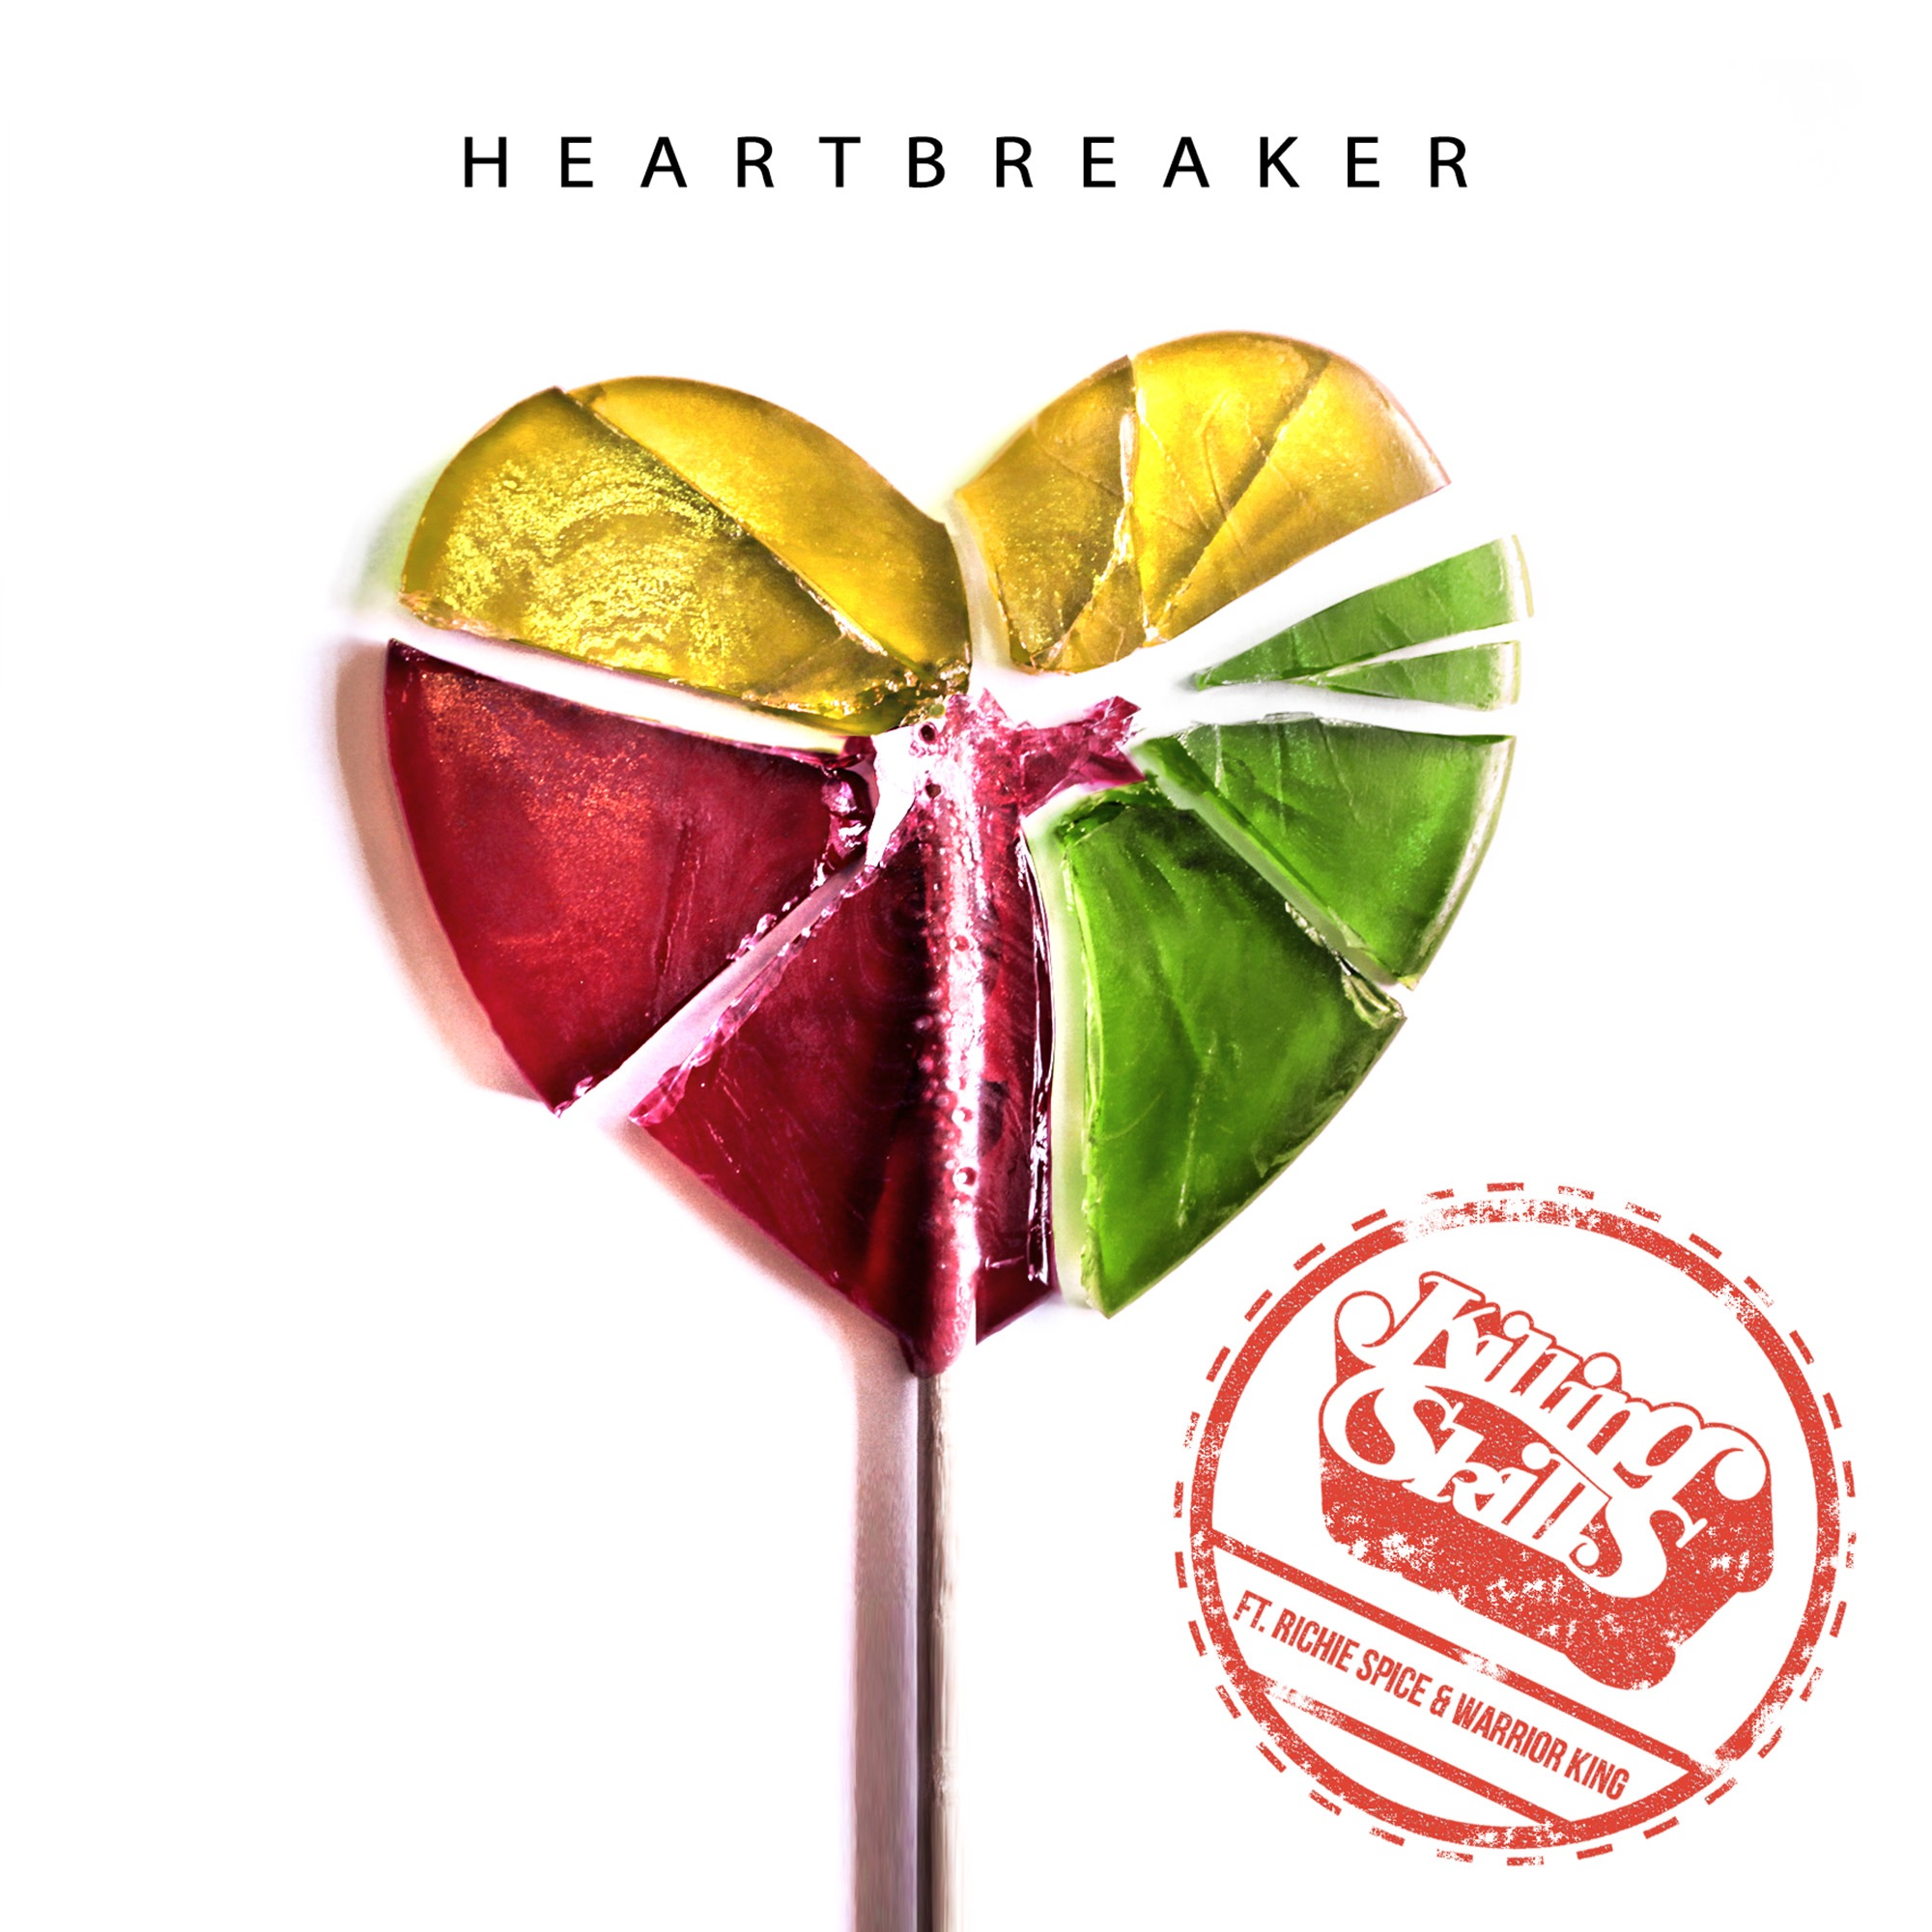 Heartbreaker (feat. Richie Spice & Warrior King)